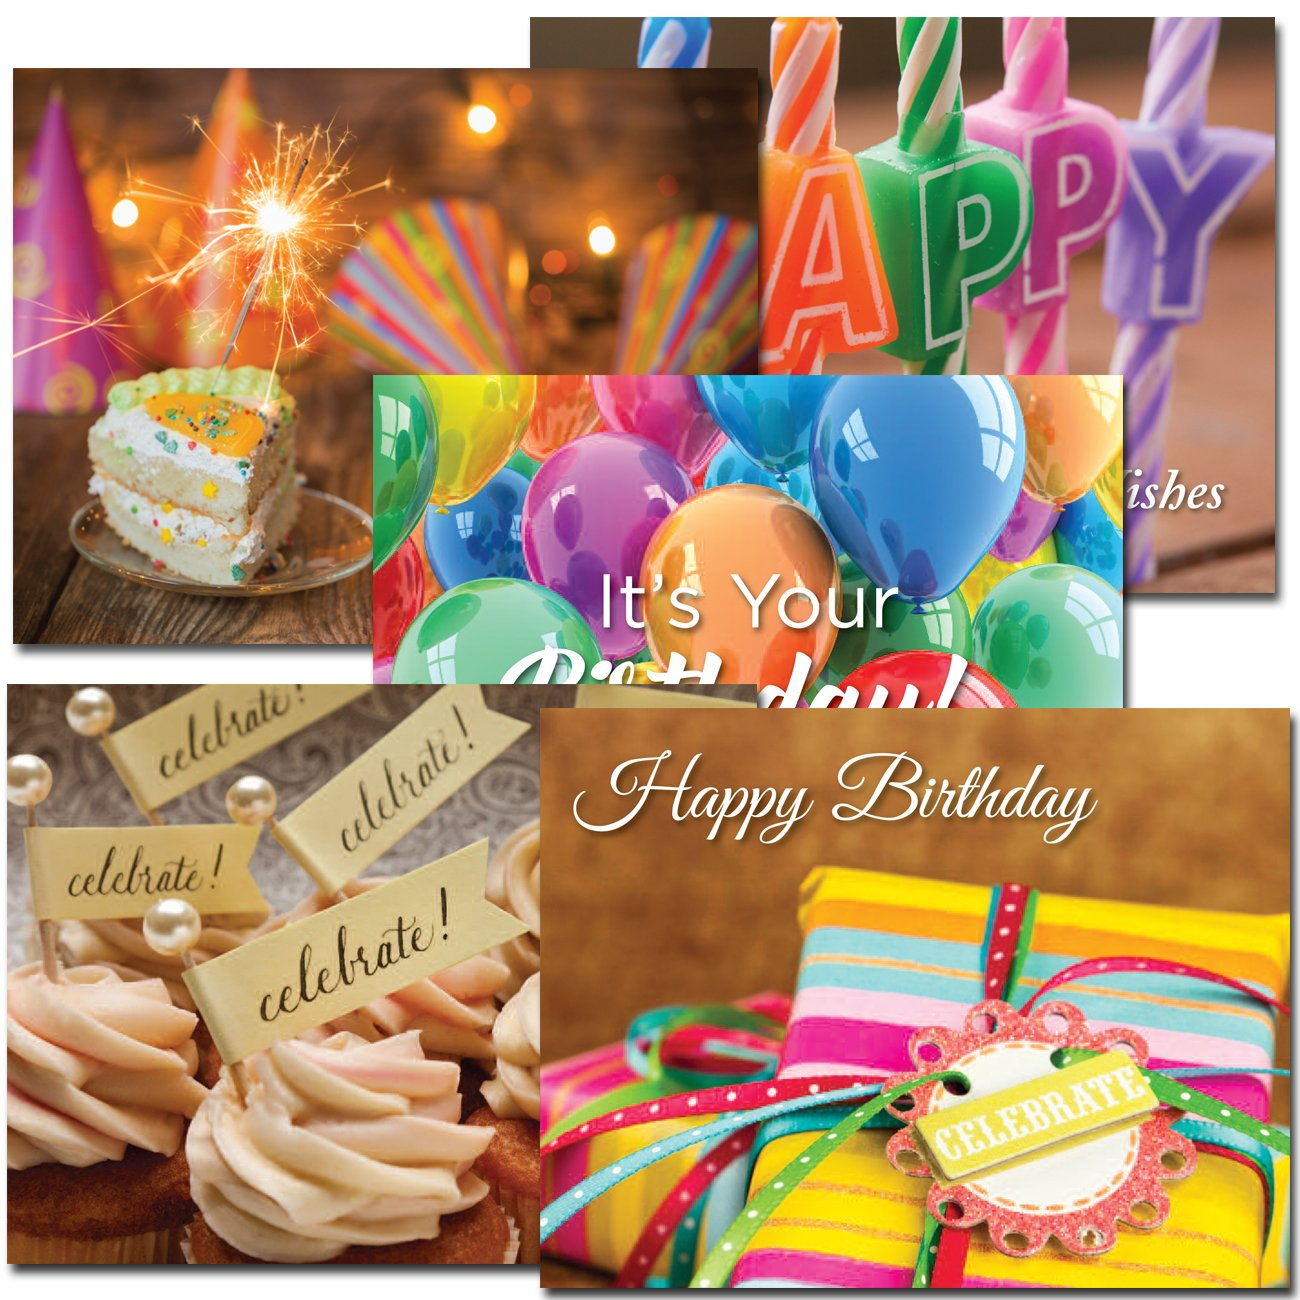 POSTCARDS:Birthday Assortment II, box of 60: 12 each of 5 designs Made in USA by CroninCards No Envelopes